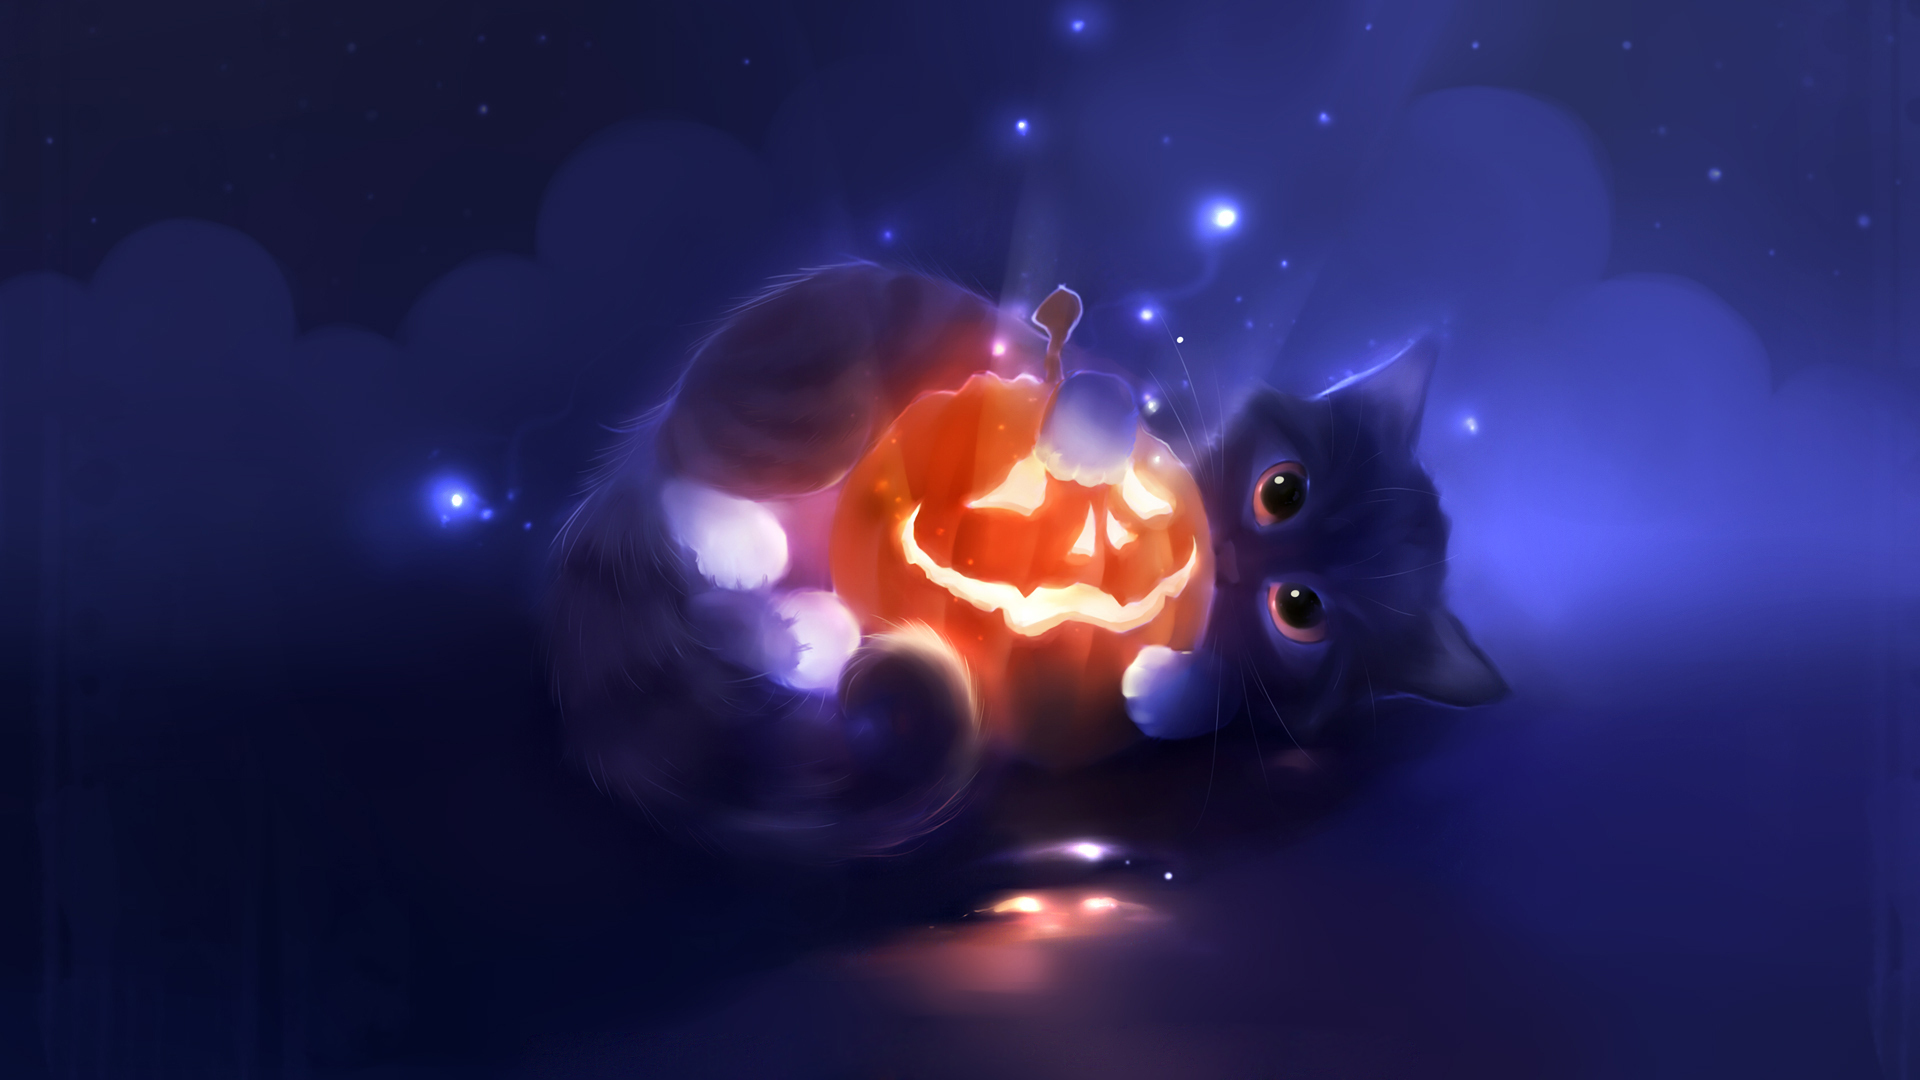 FunMozar Cool Halloween Wallpapers 1920x1080